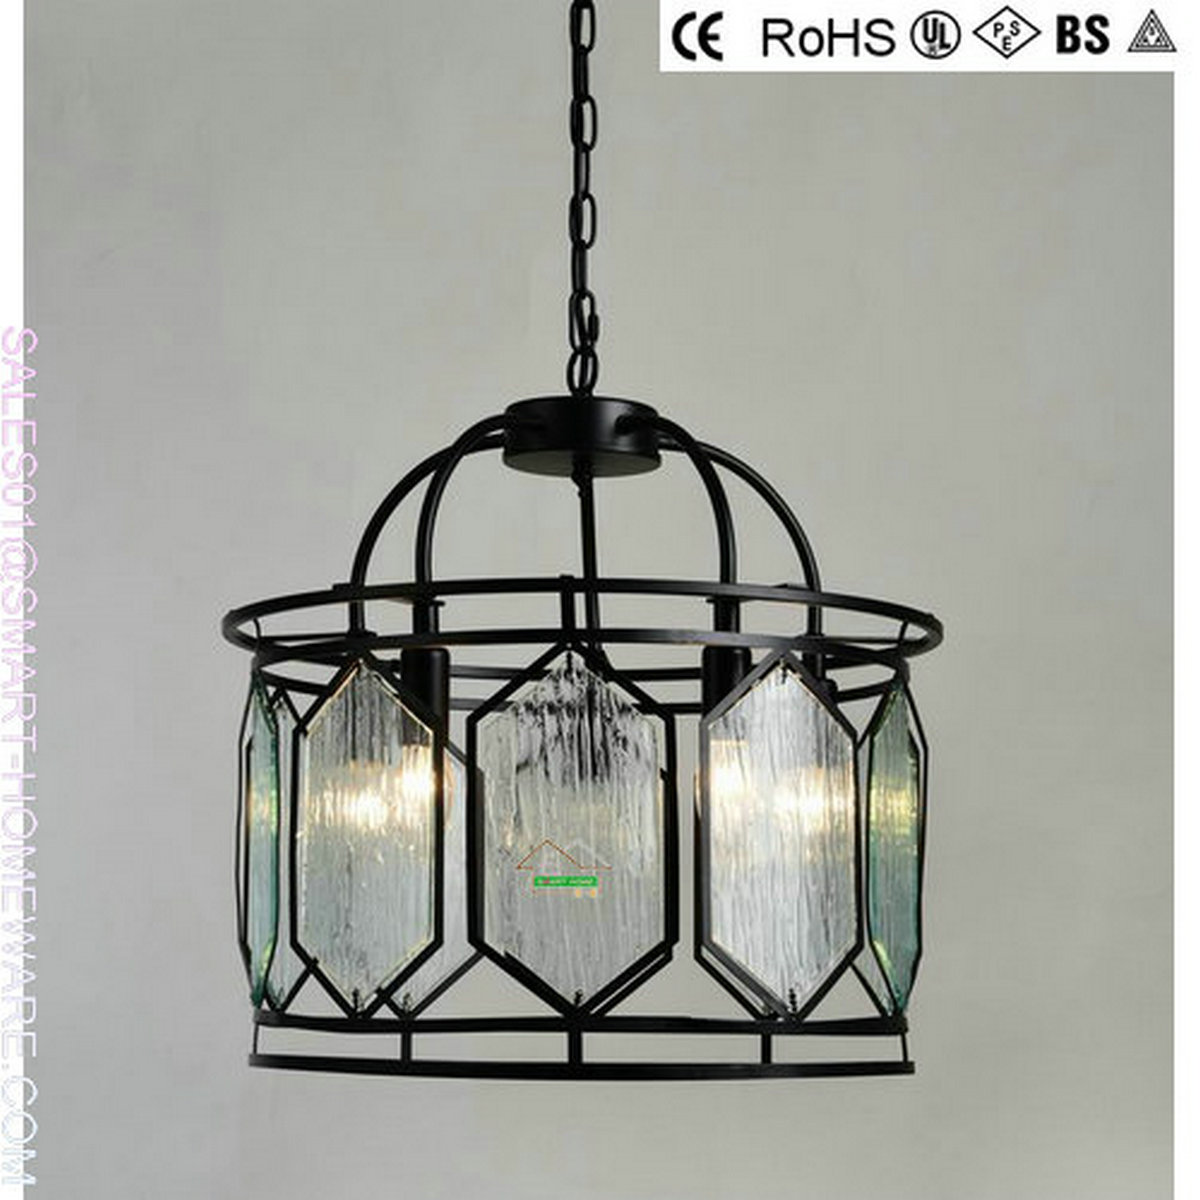 SH0166 American traditional style metal and glass chandeliers for house decoration